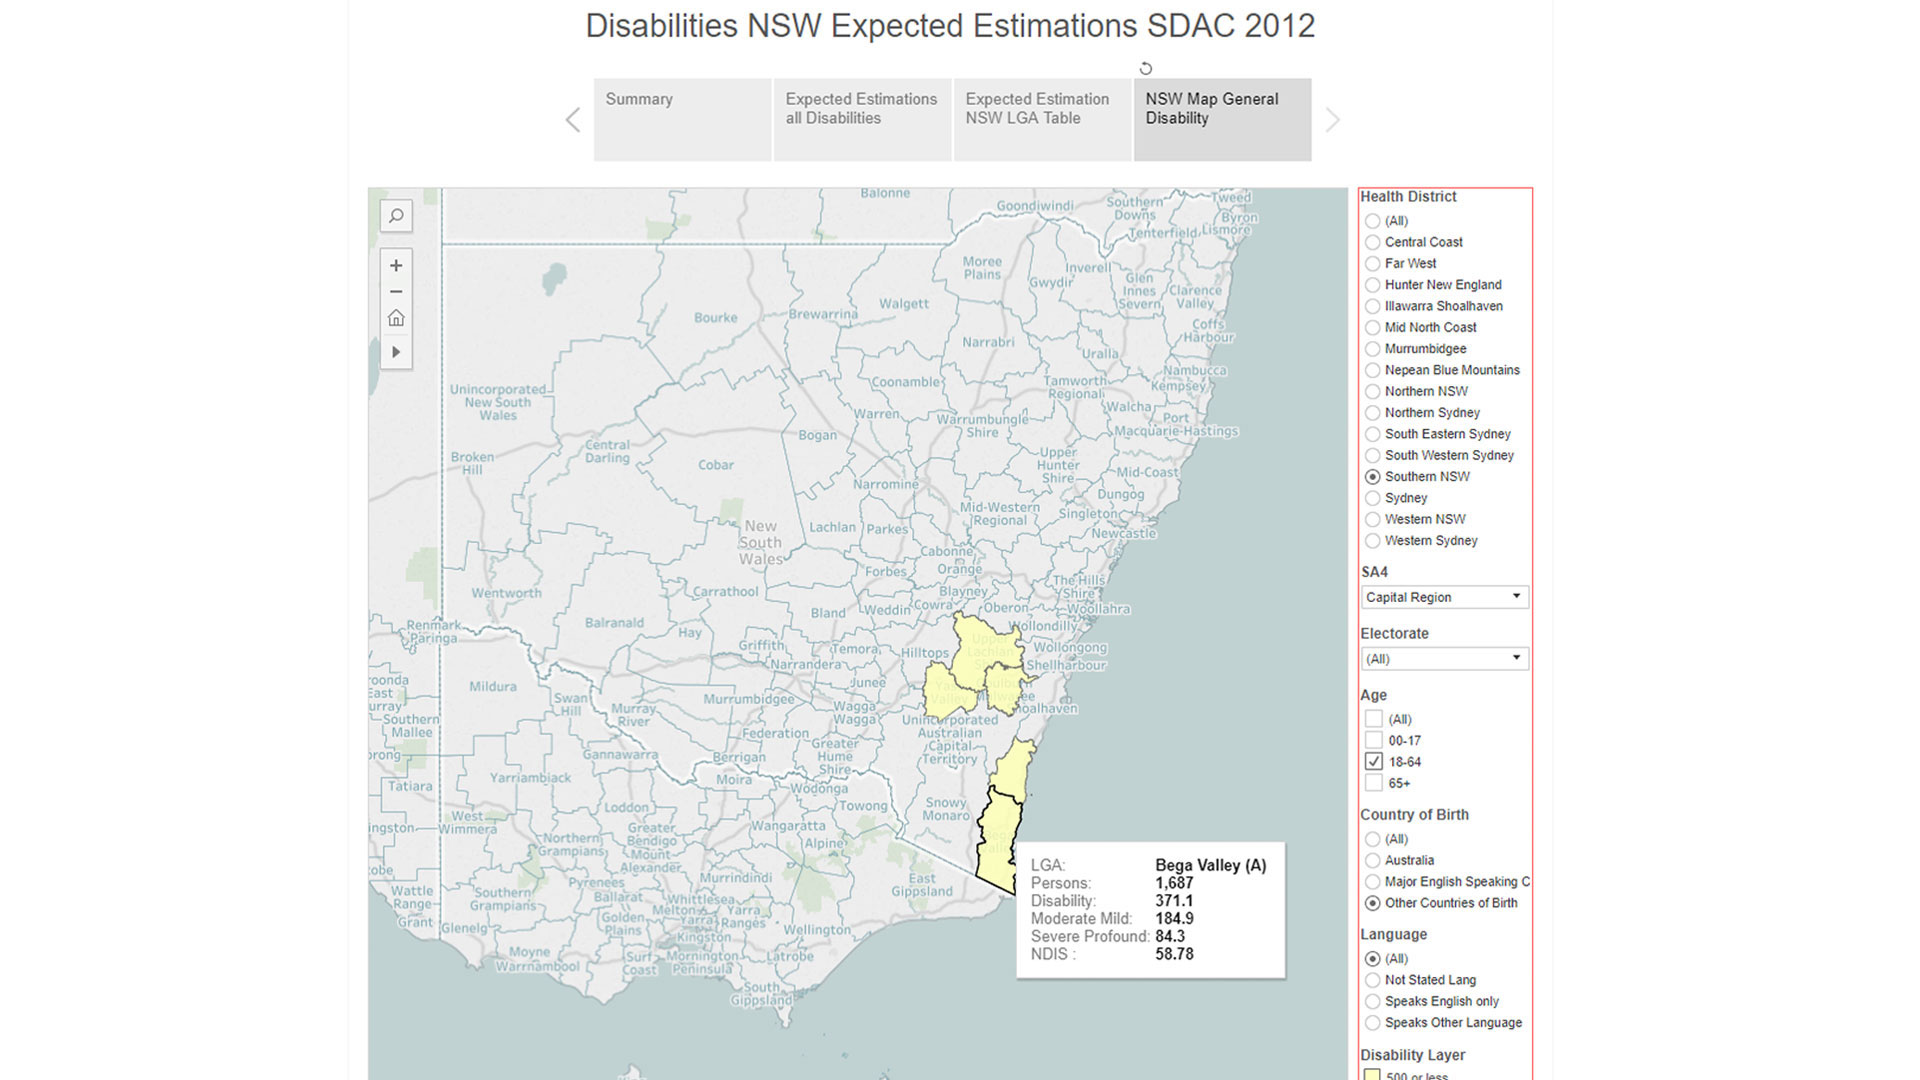 Disabilities NSW Expected Estimations SDAC 2012 - NEDA Data Example